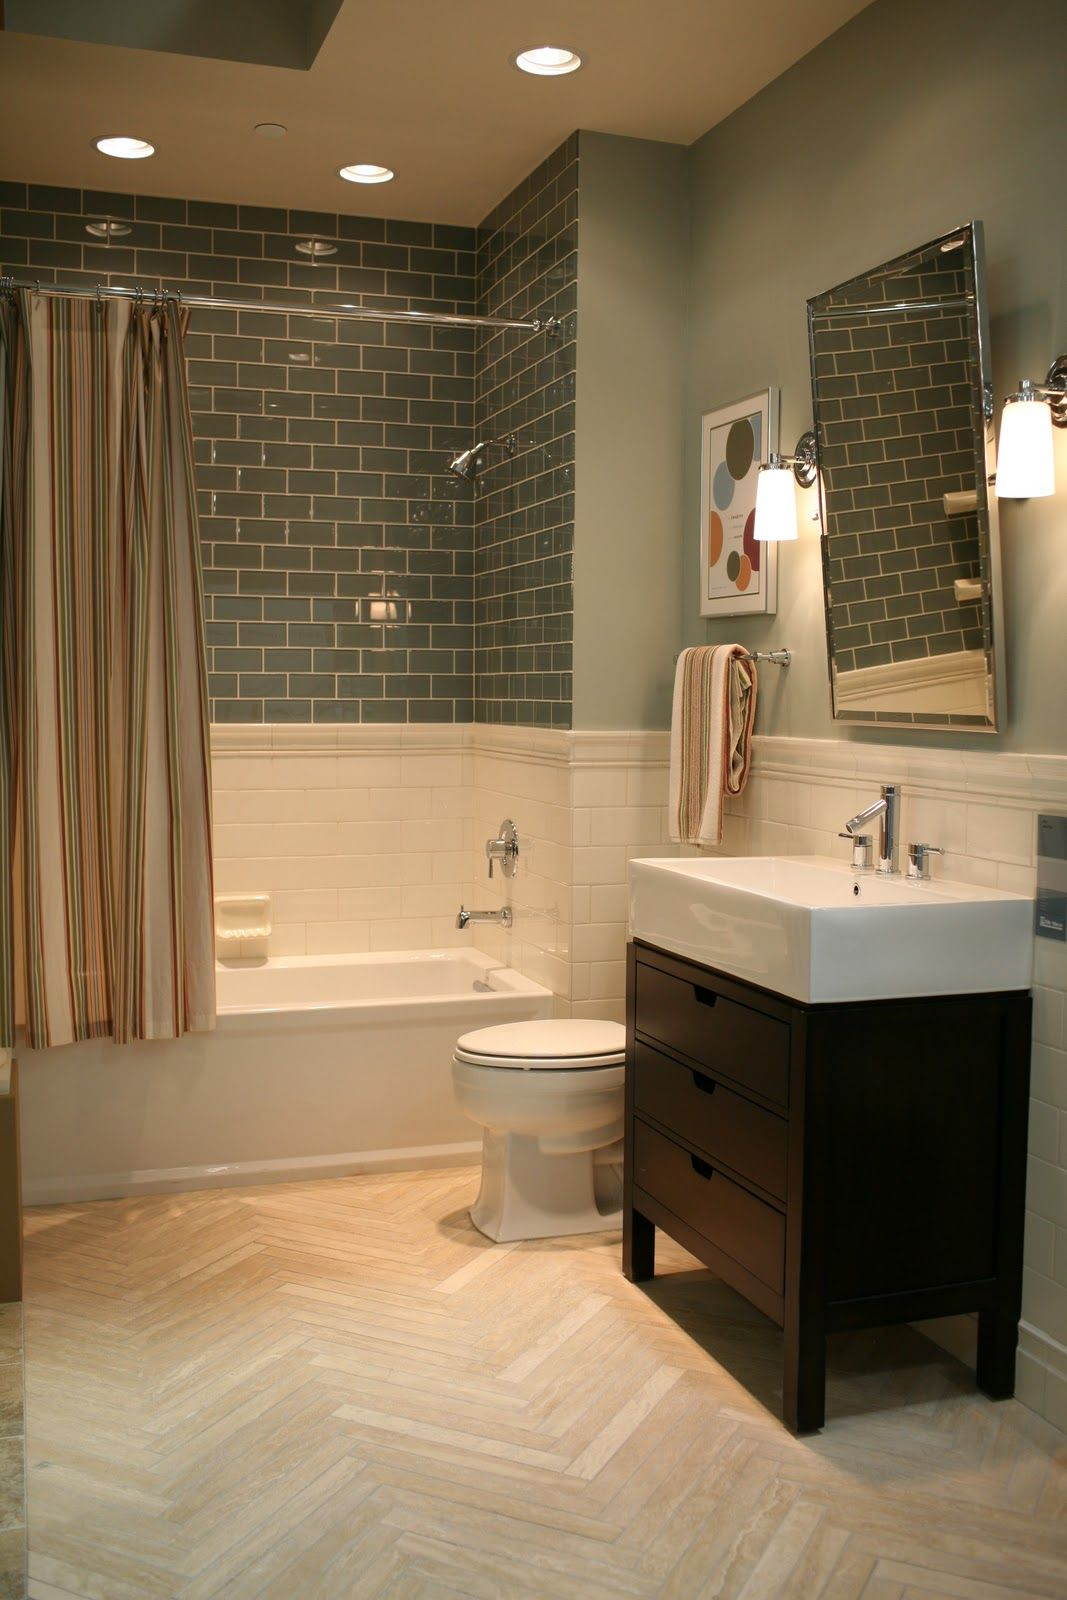 Bathrooms | Stone & Tile Bathroom Options from Westside Tile & Stone ...